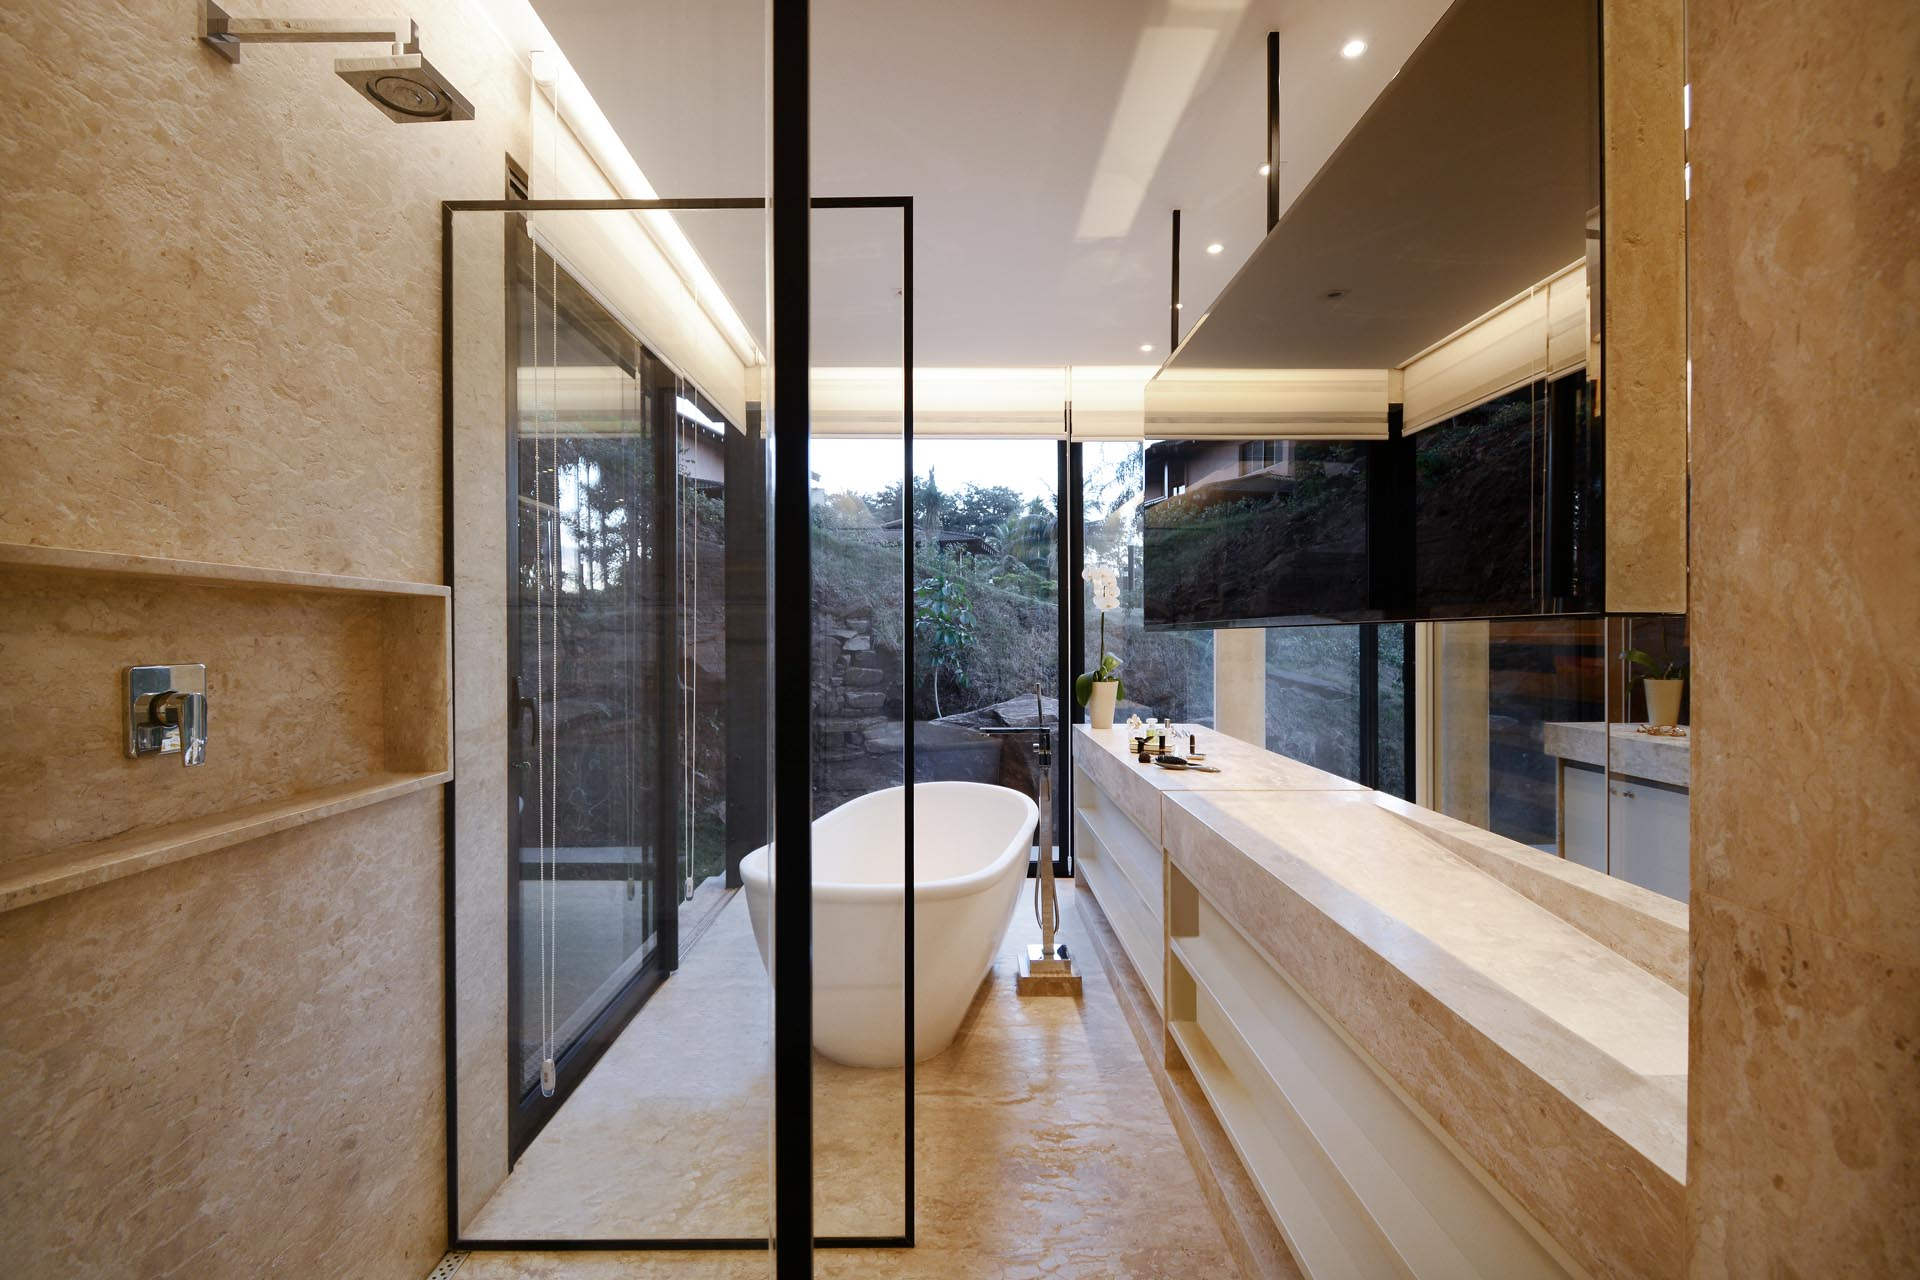 A modern bathroom with floor-to-ceiling windows that provide tree views for the freestanding bathtub.